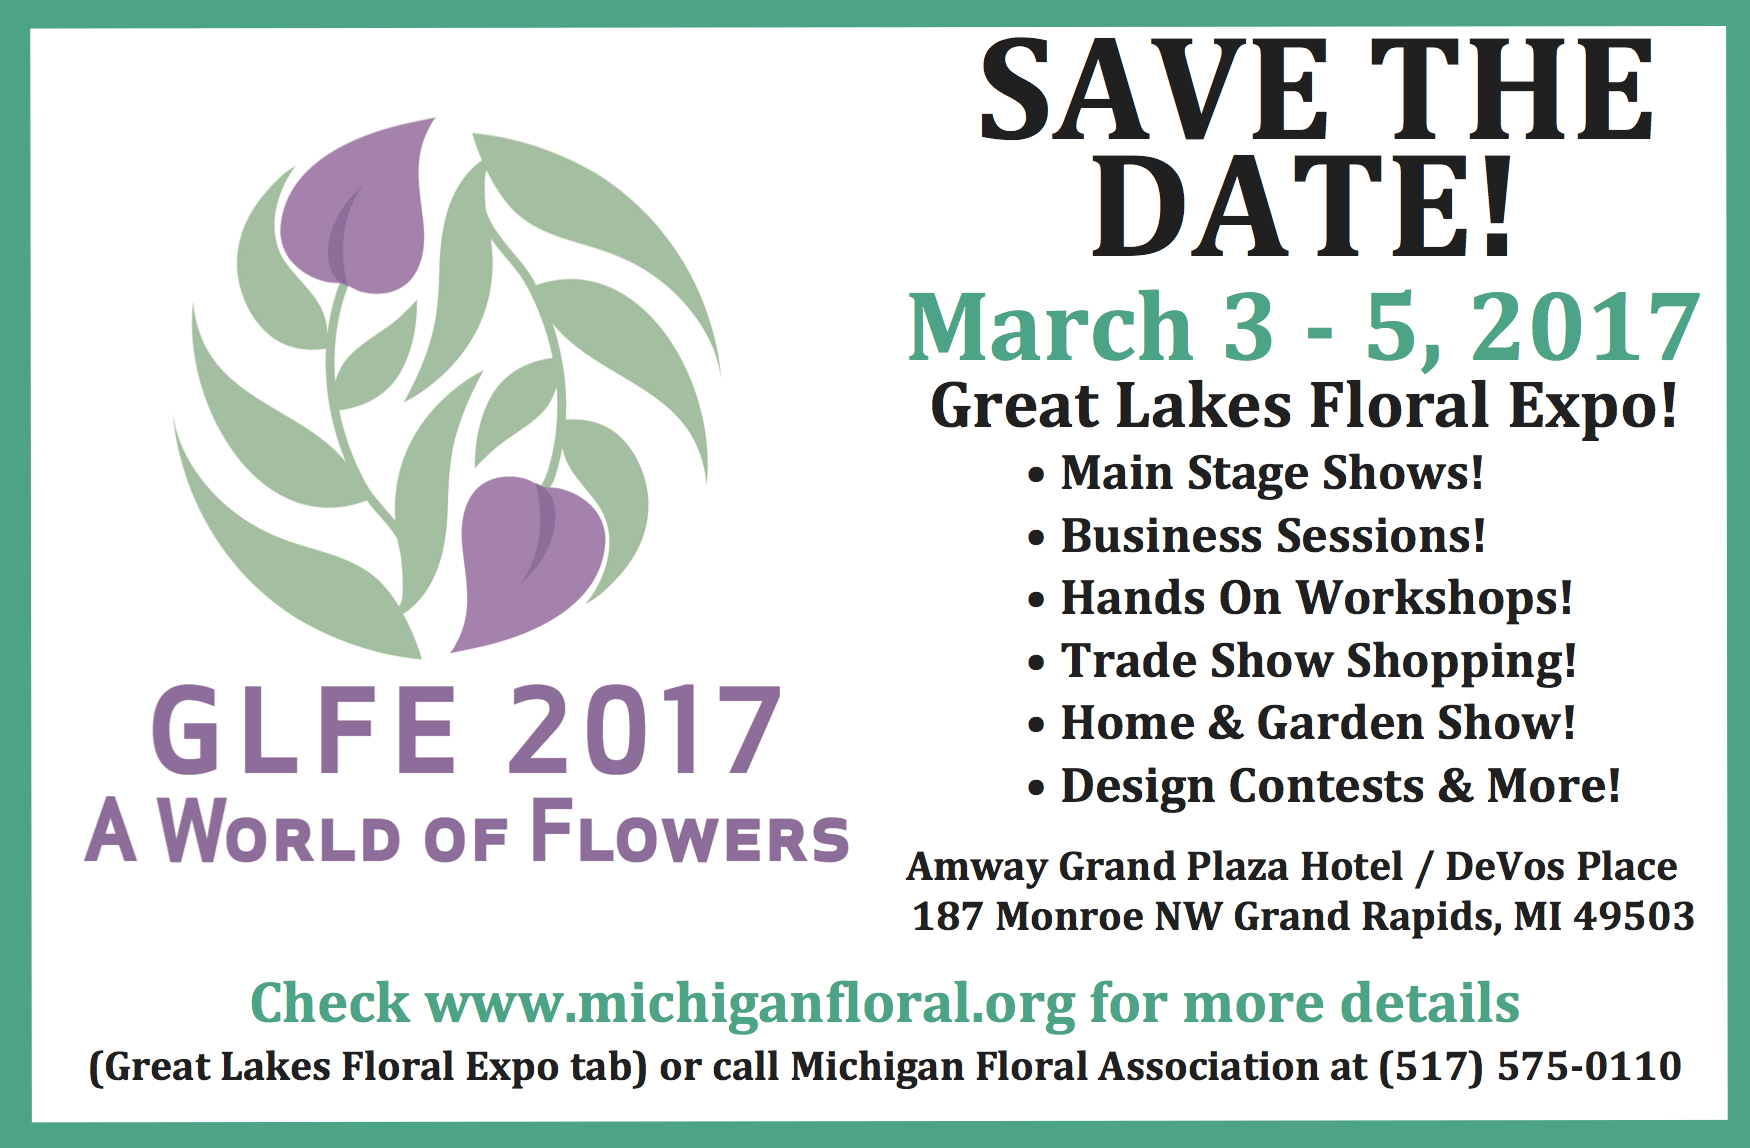 The 2016 Great Lakes Floral Expo